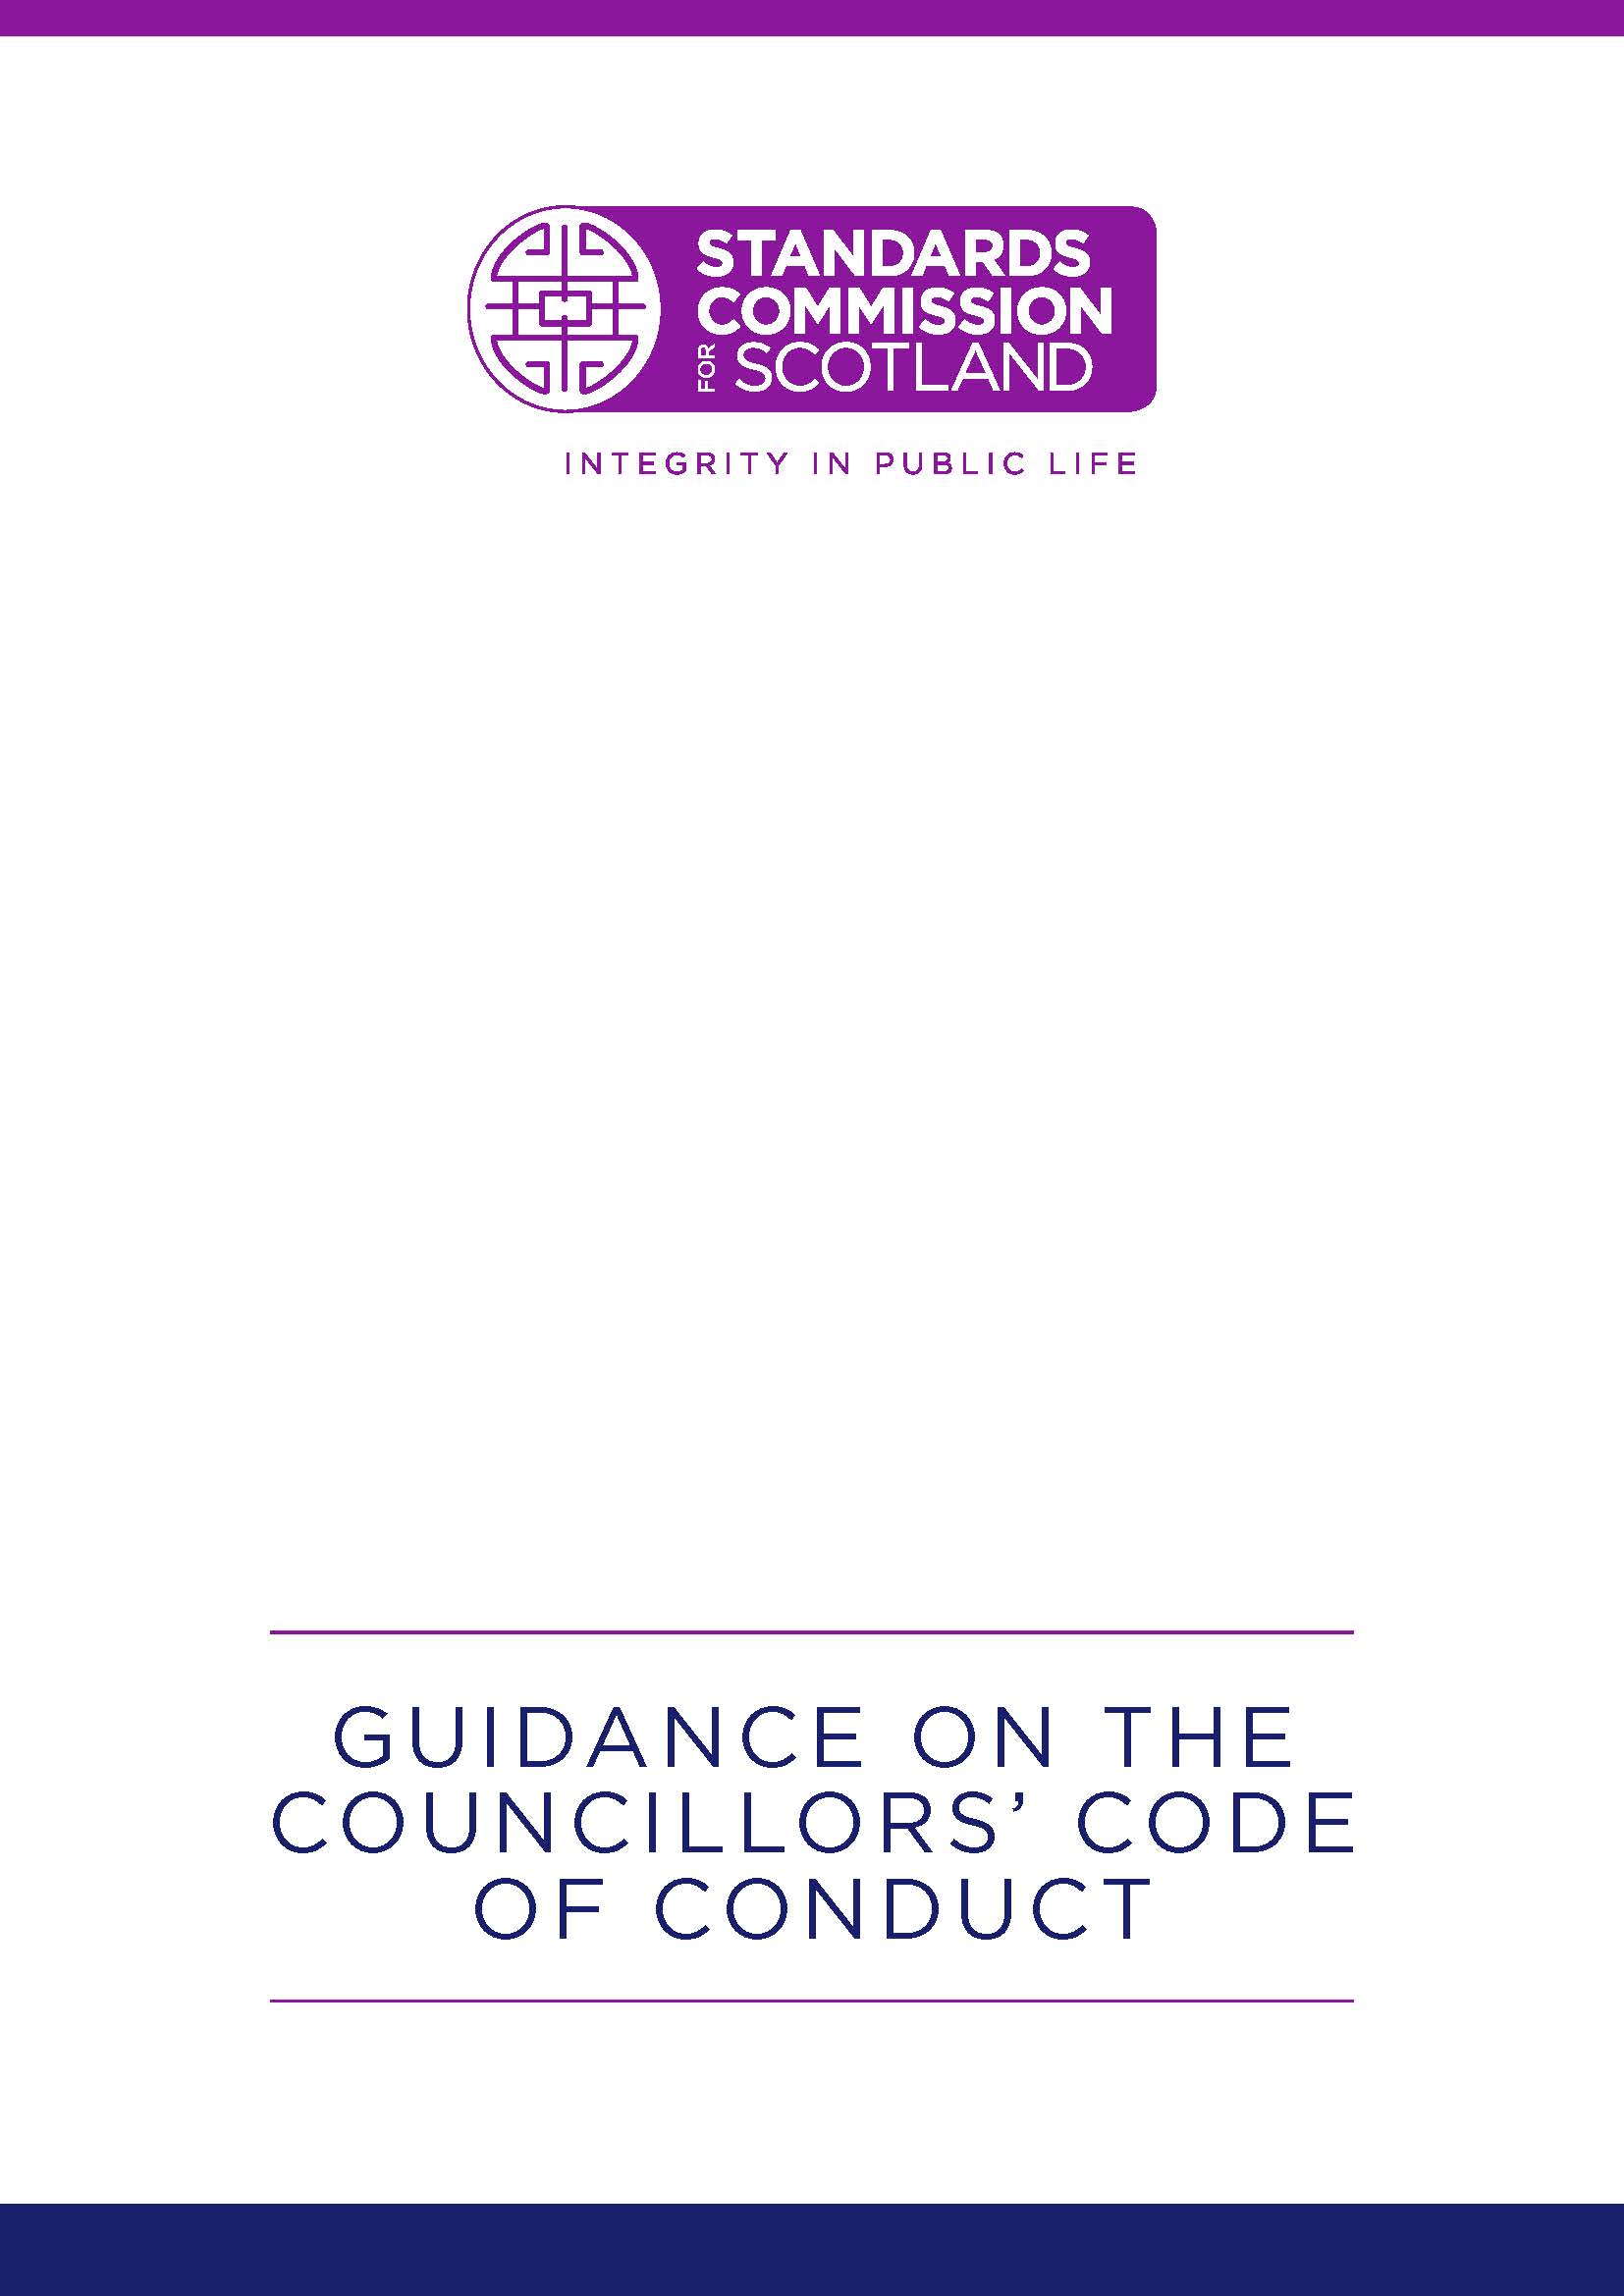 Guidance on the Councillors' Code of Conduct